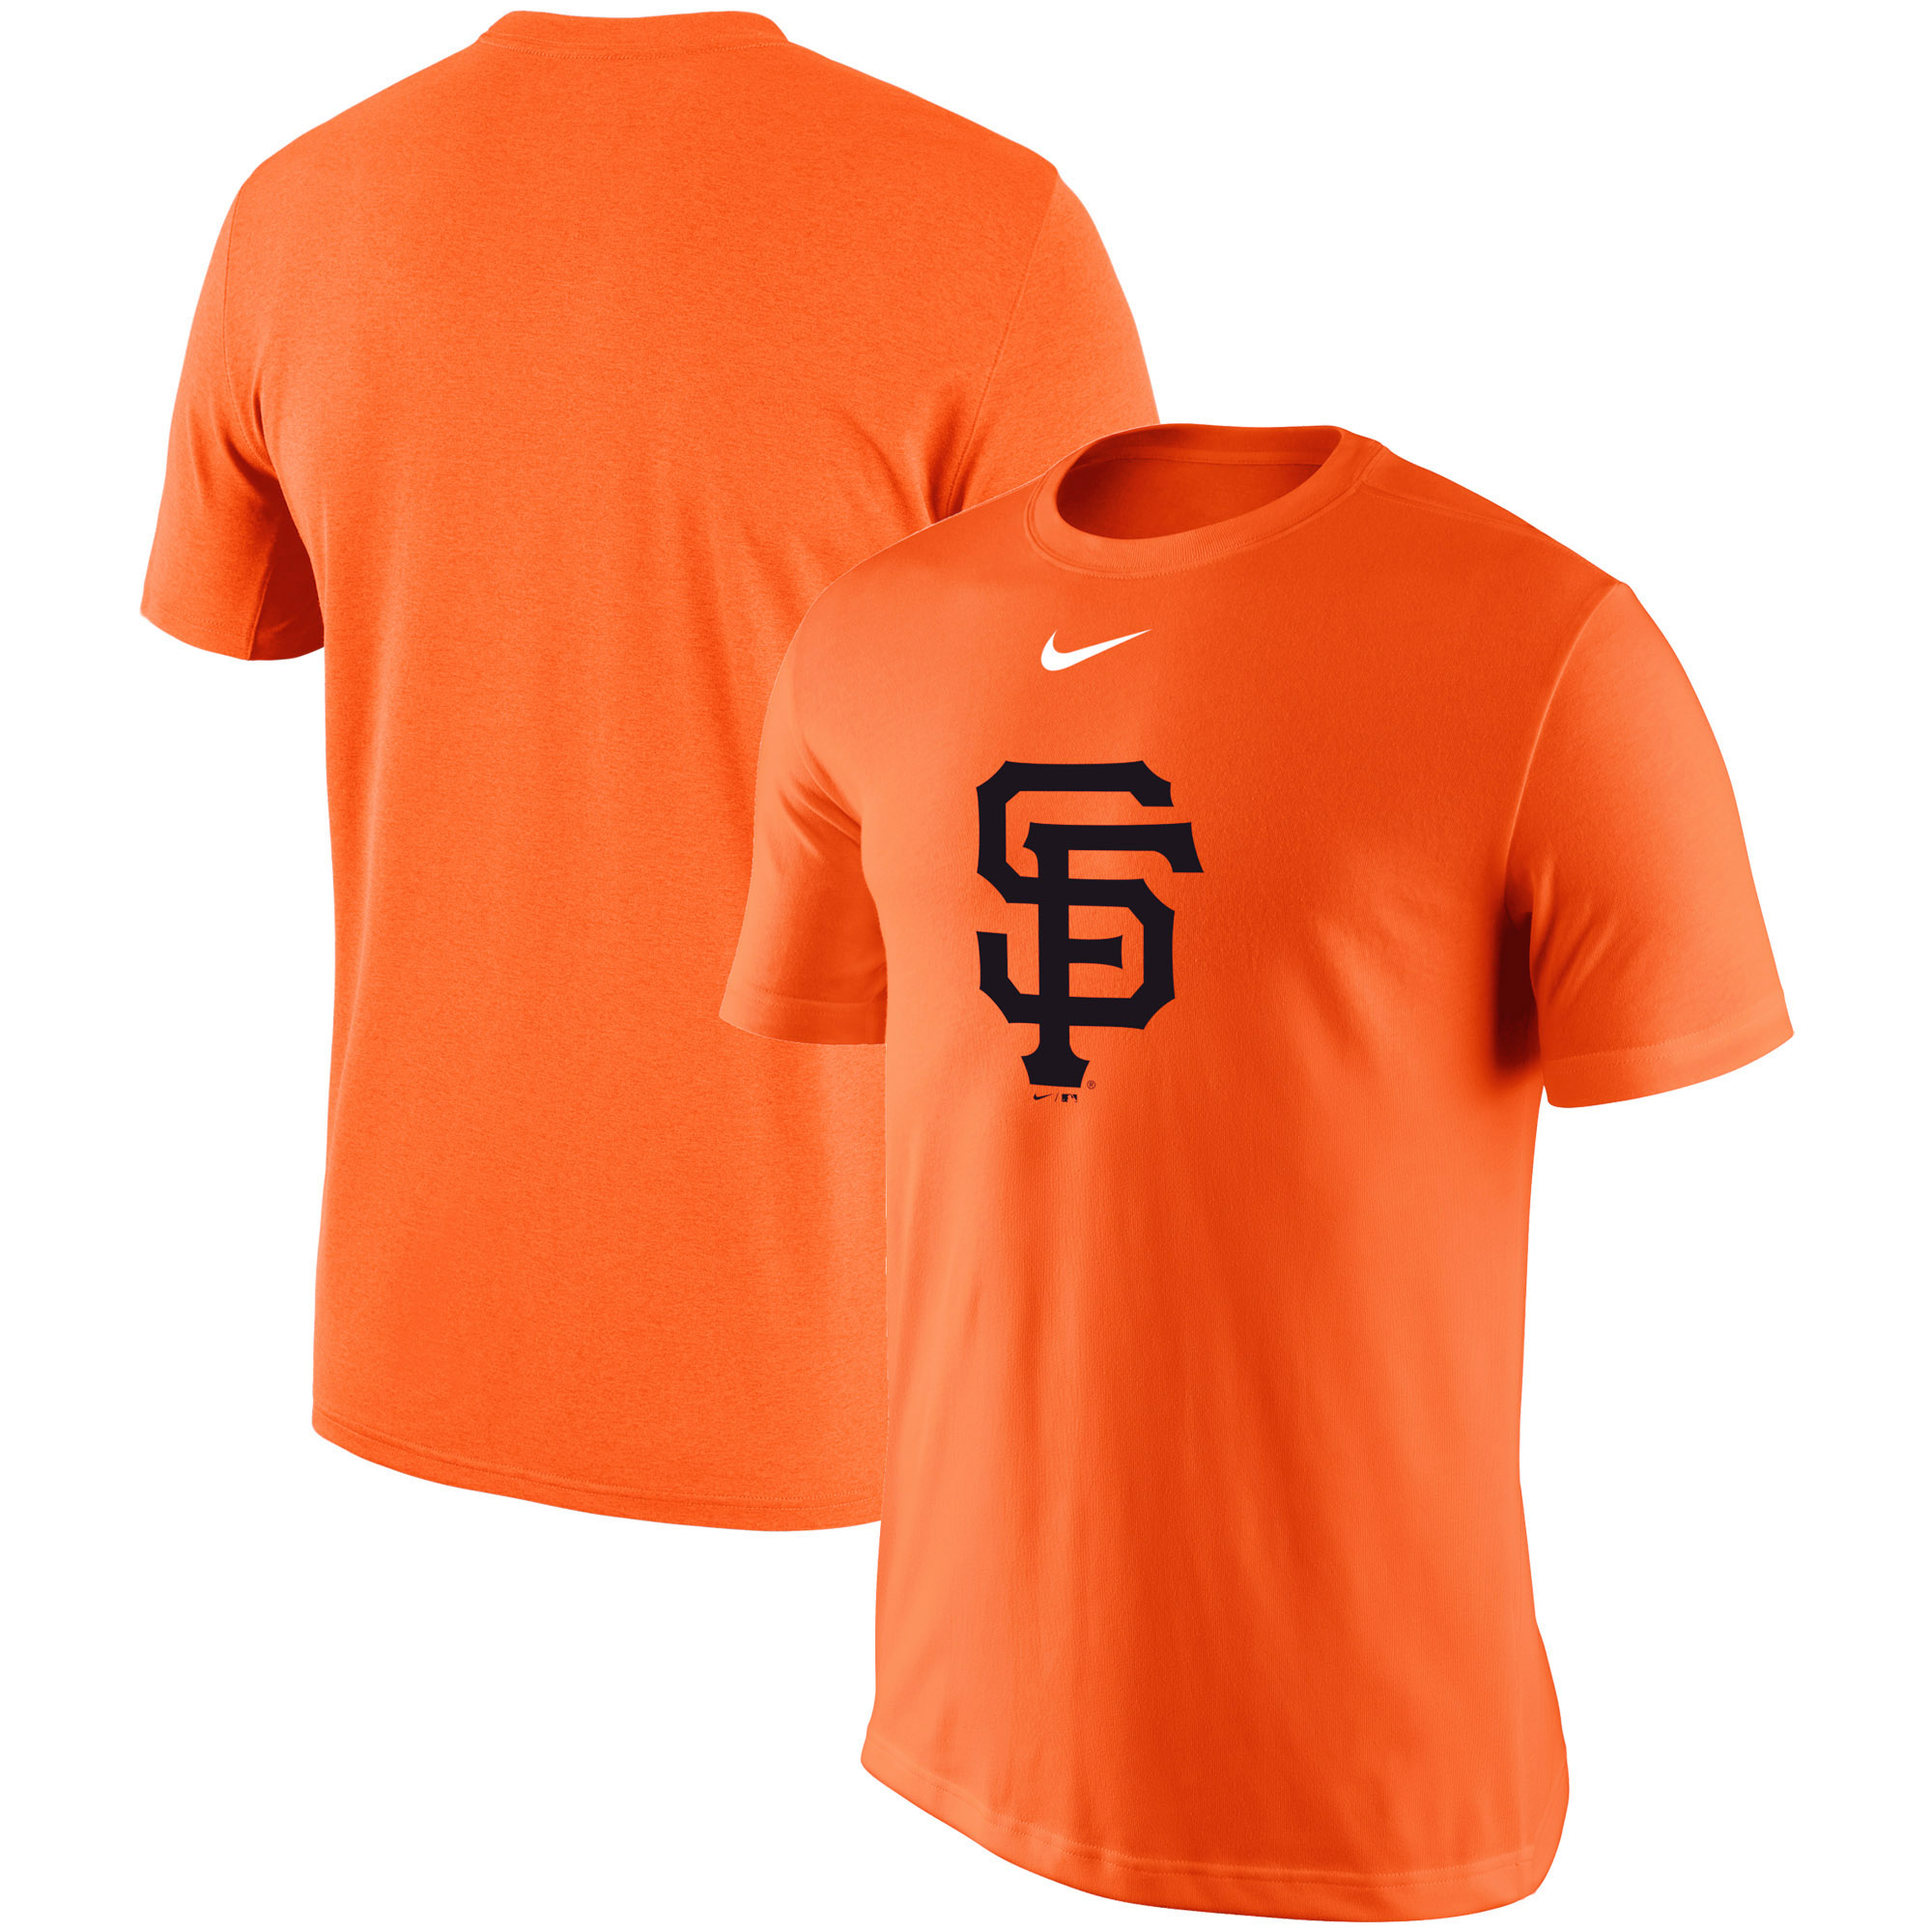 San Francisco Giants Nike Batting Practice Logo Legend Performance T-Shirt - Orange